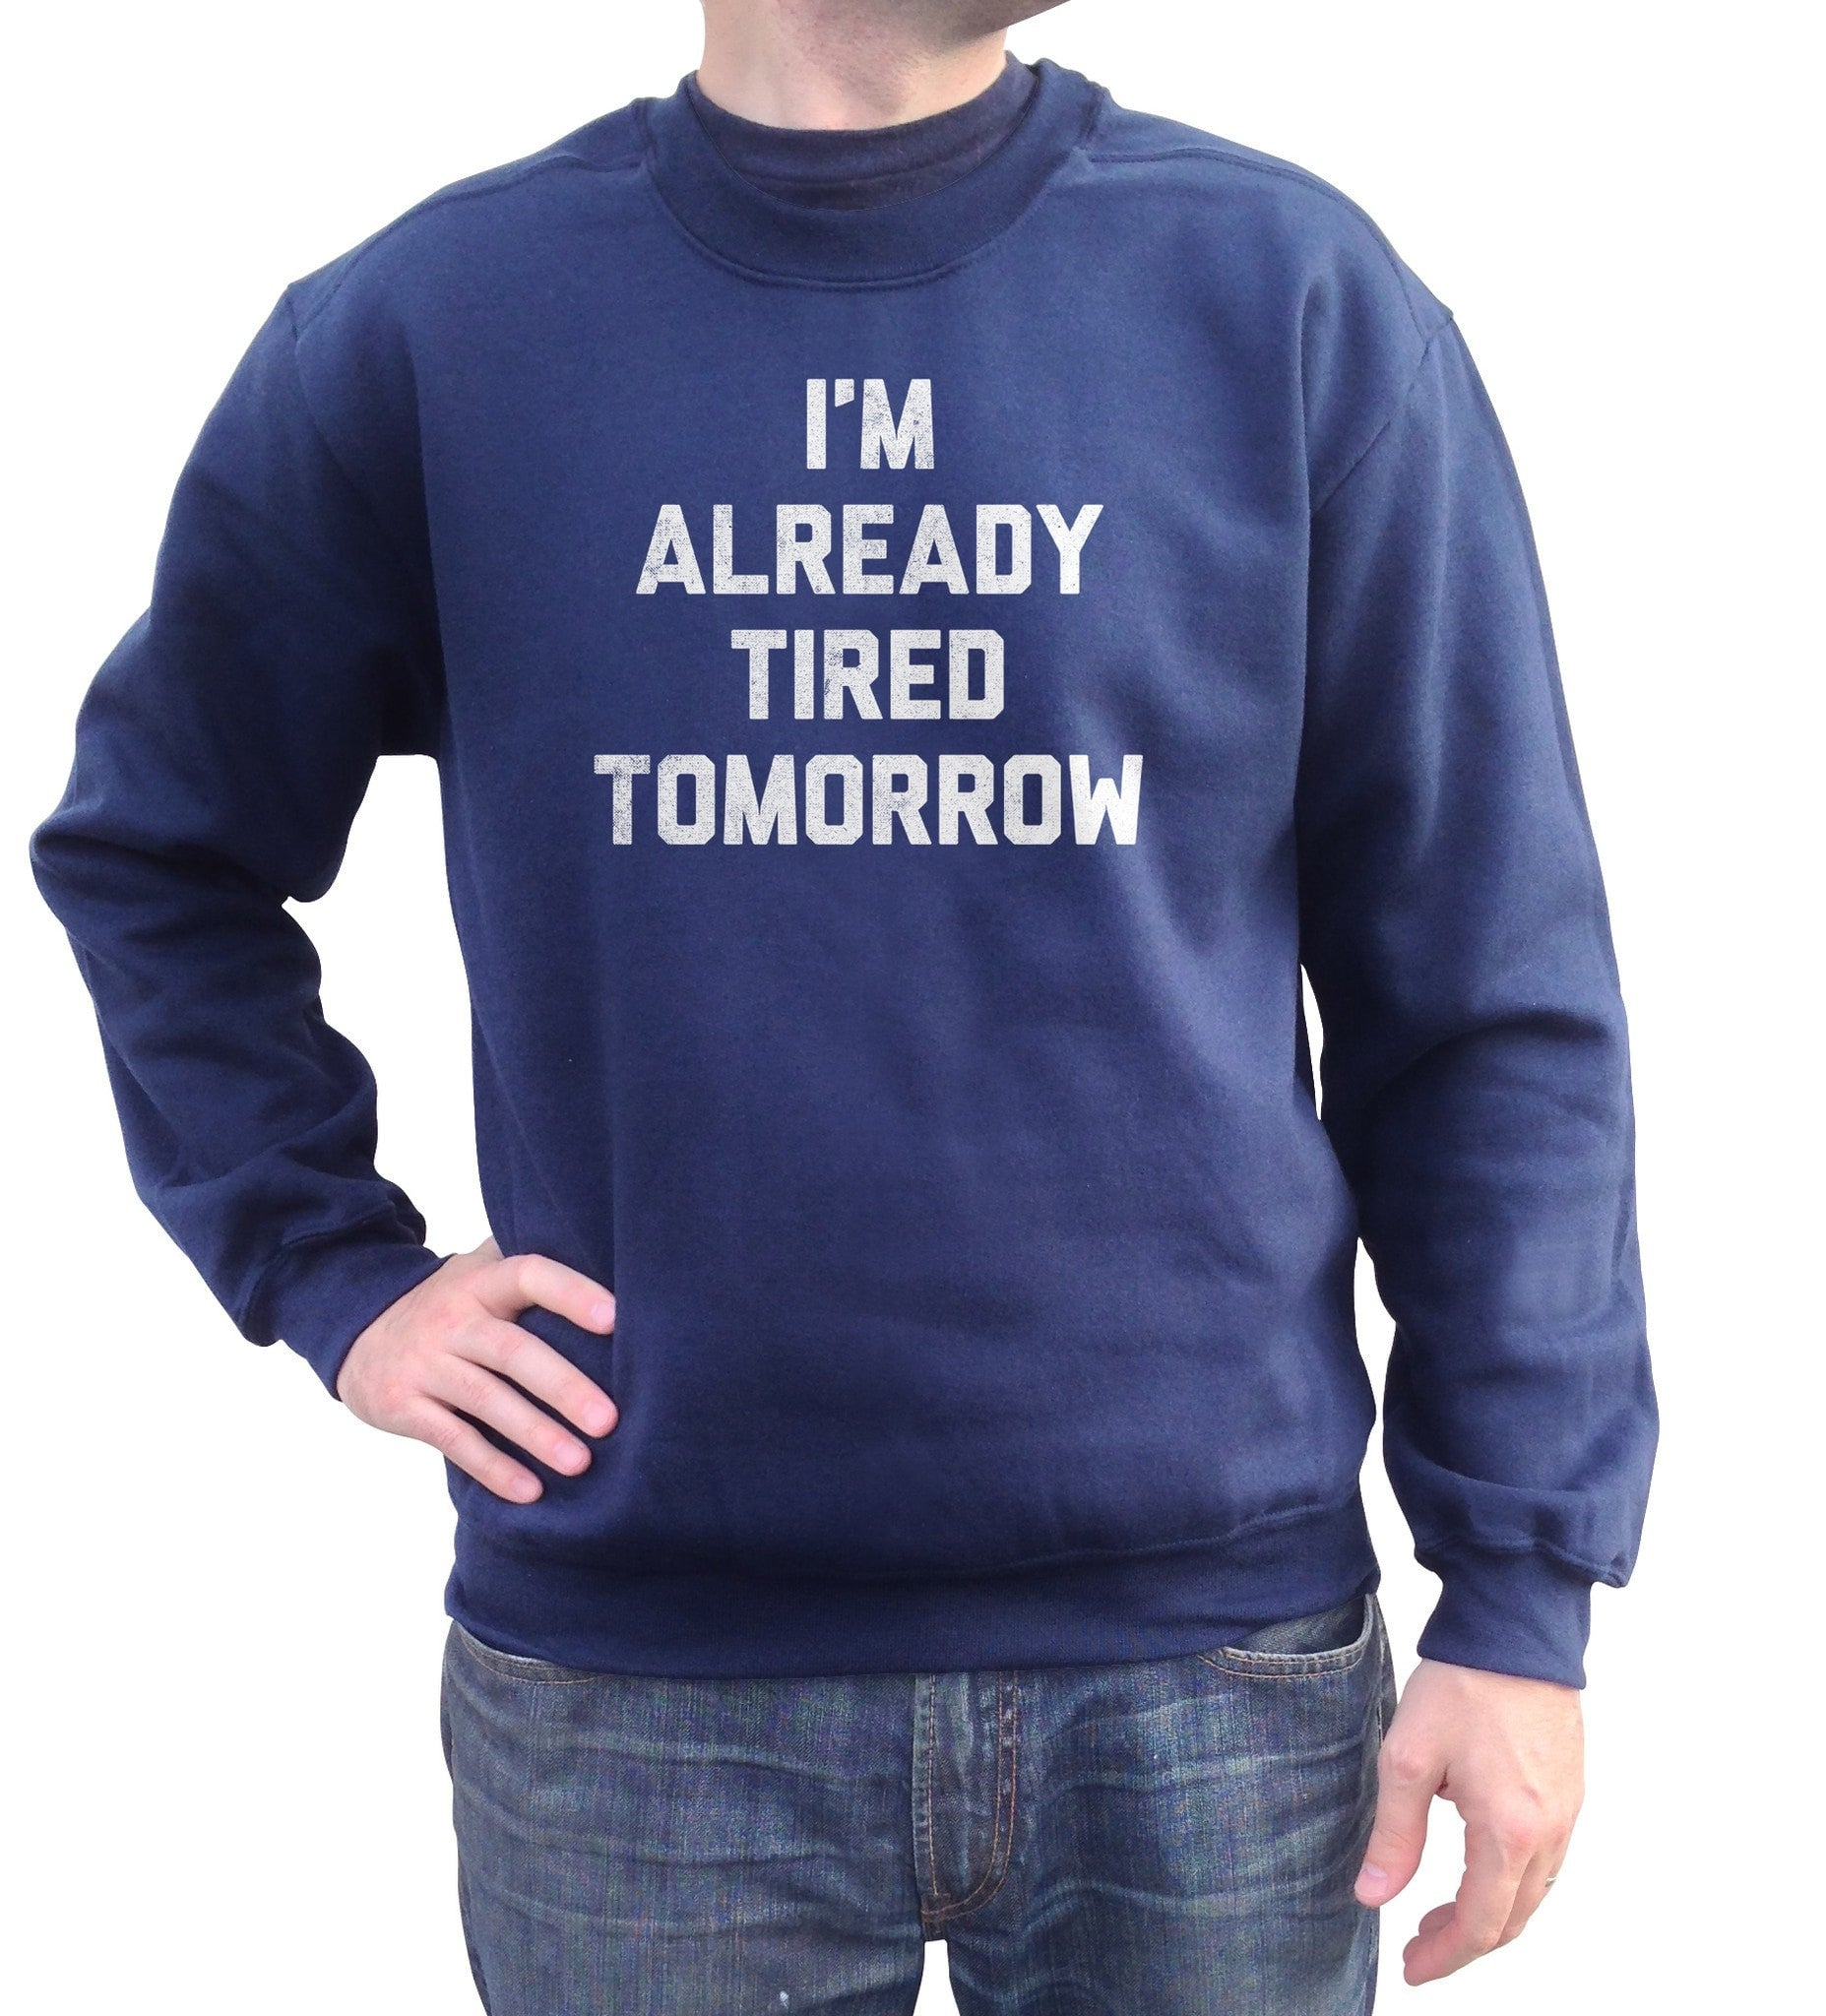 Unisex I'm Already Tired Tomorrow Sweatshirt